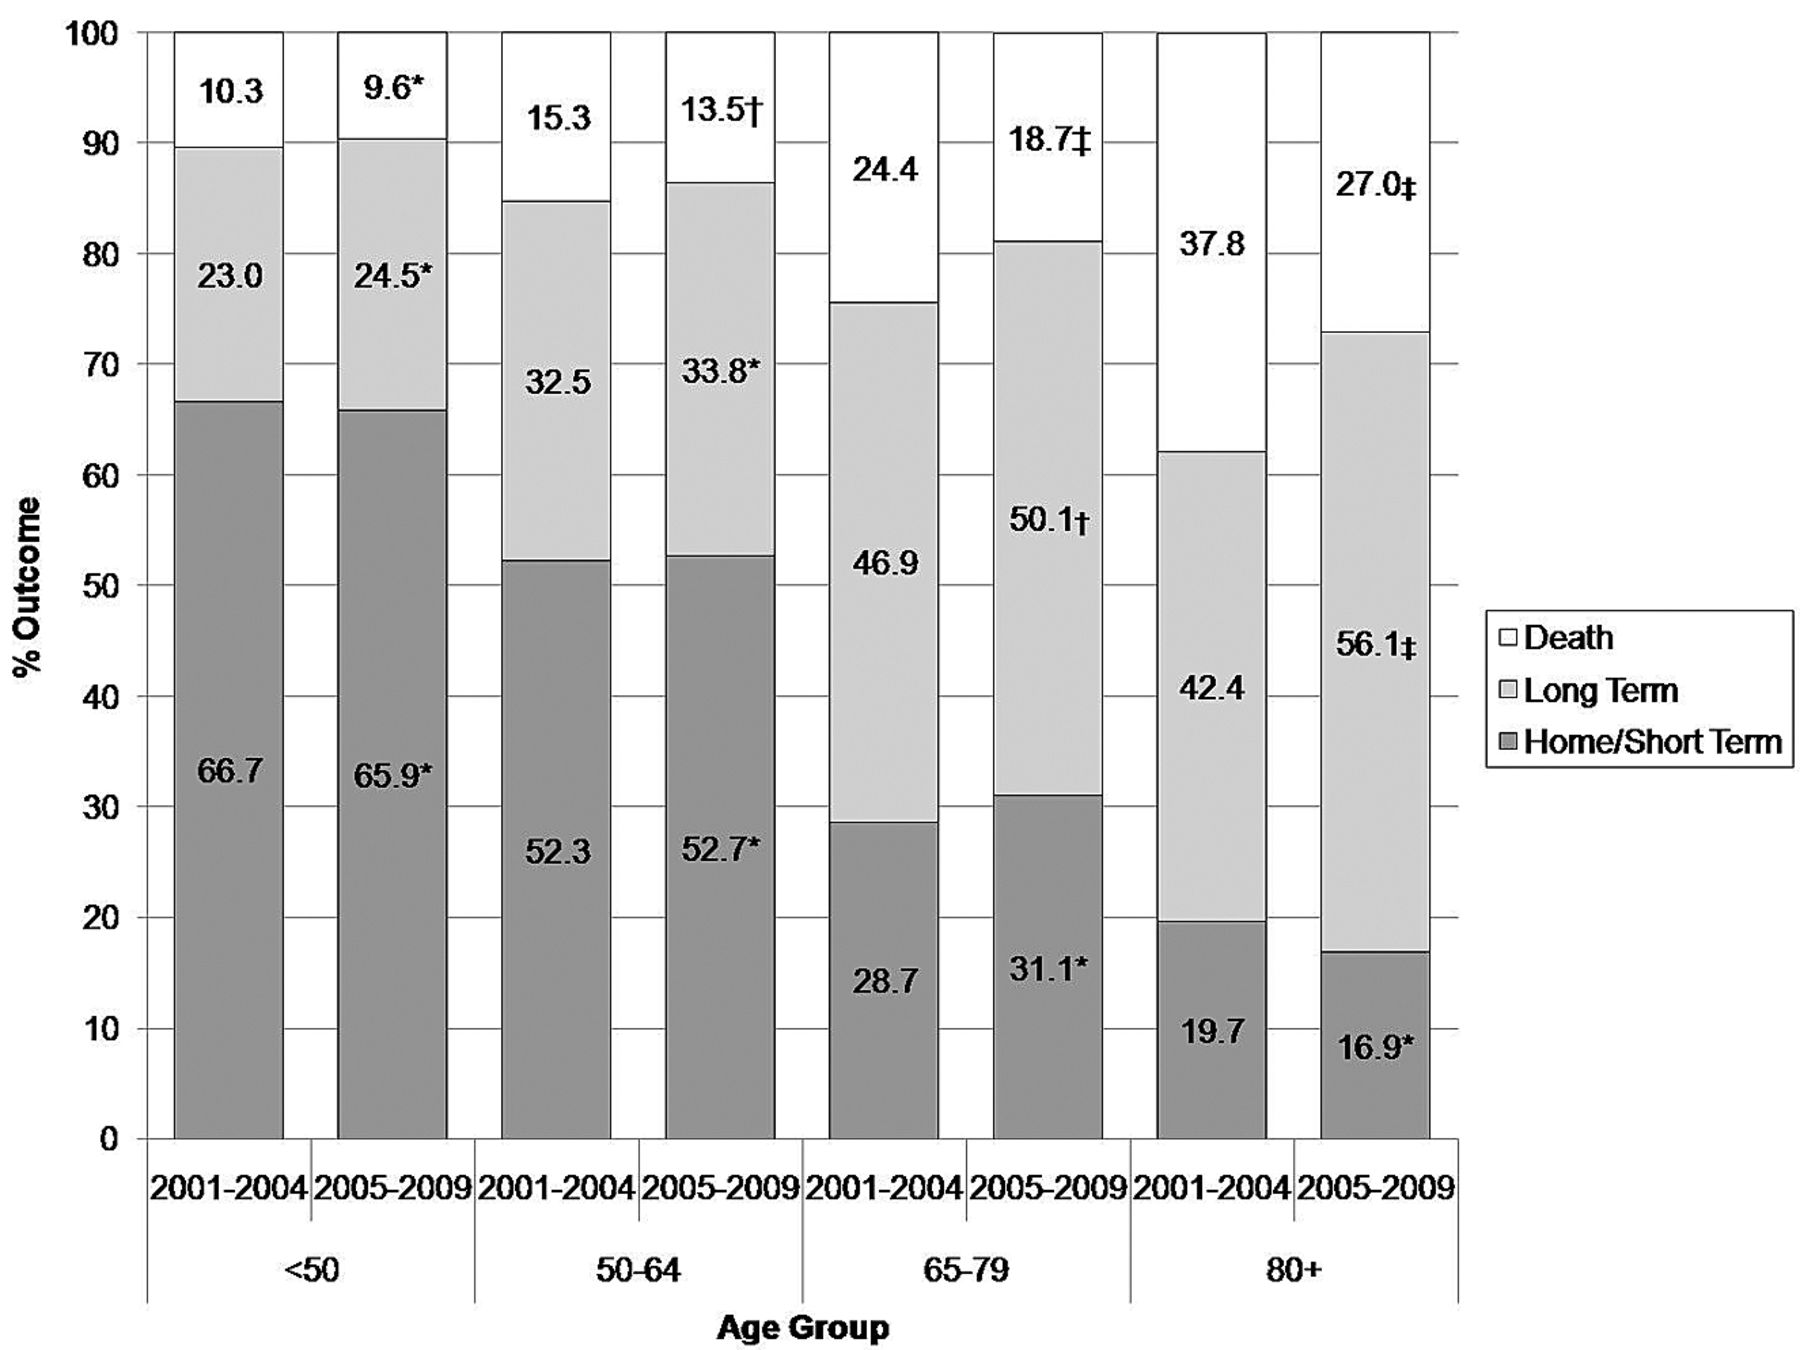 Age-Related Trends in the Treatment and Outcomes of Ruptured